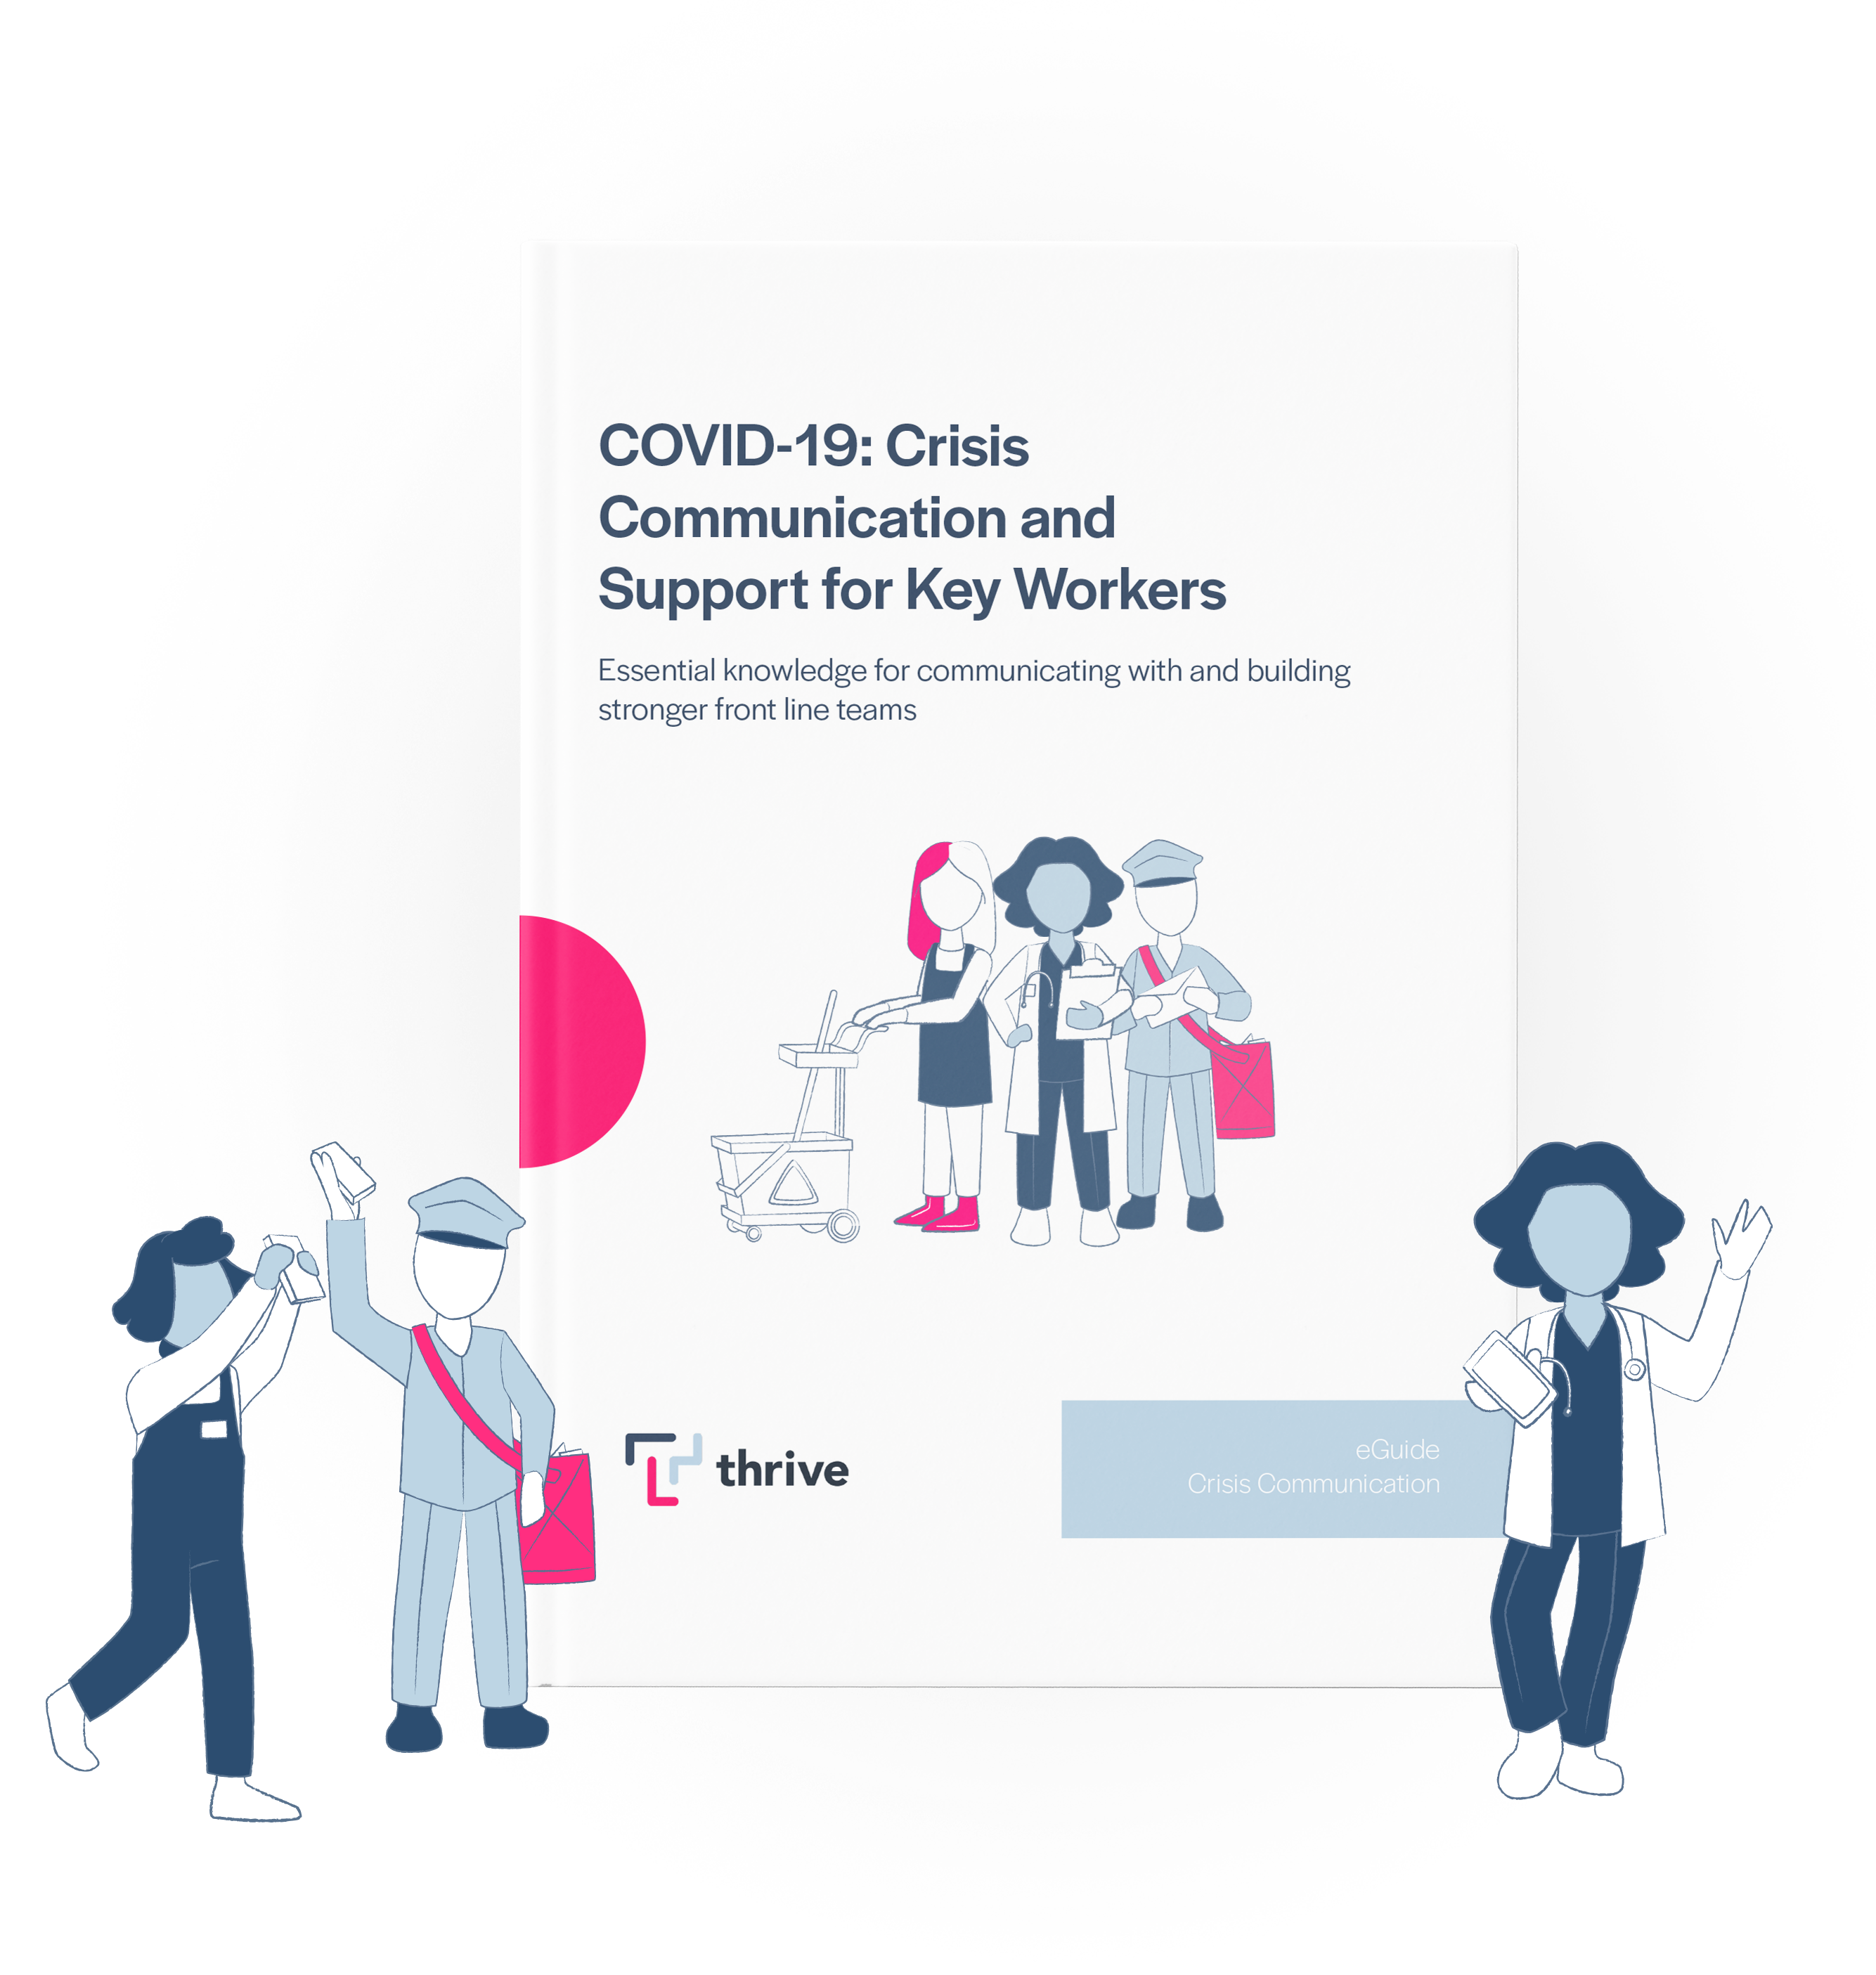 COVID19-crisis-communication-and-support-for-key-workers